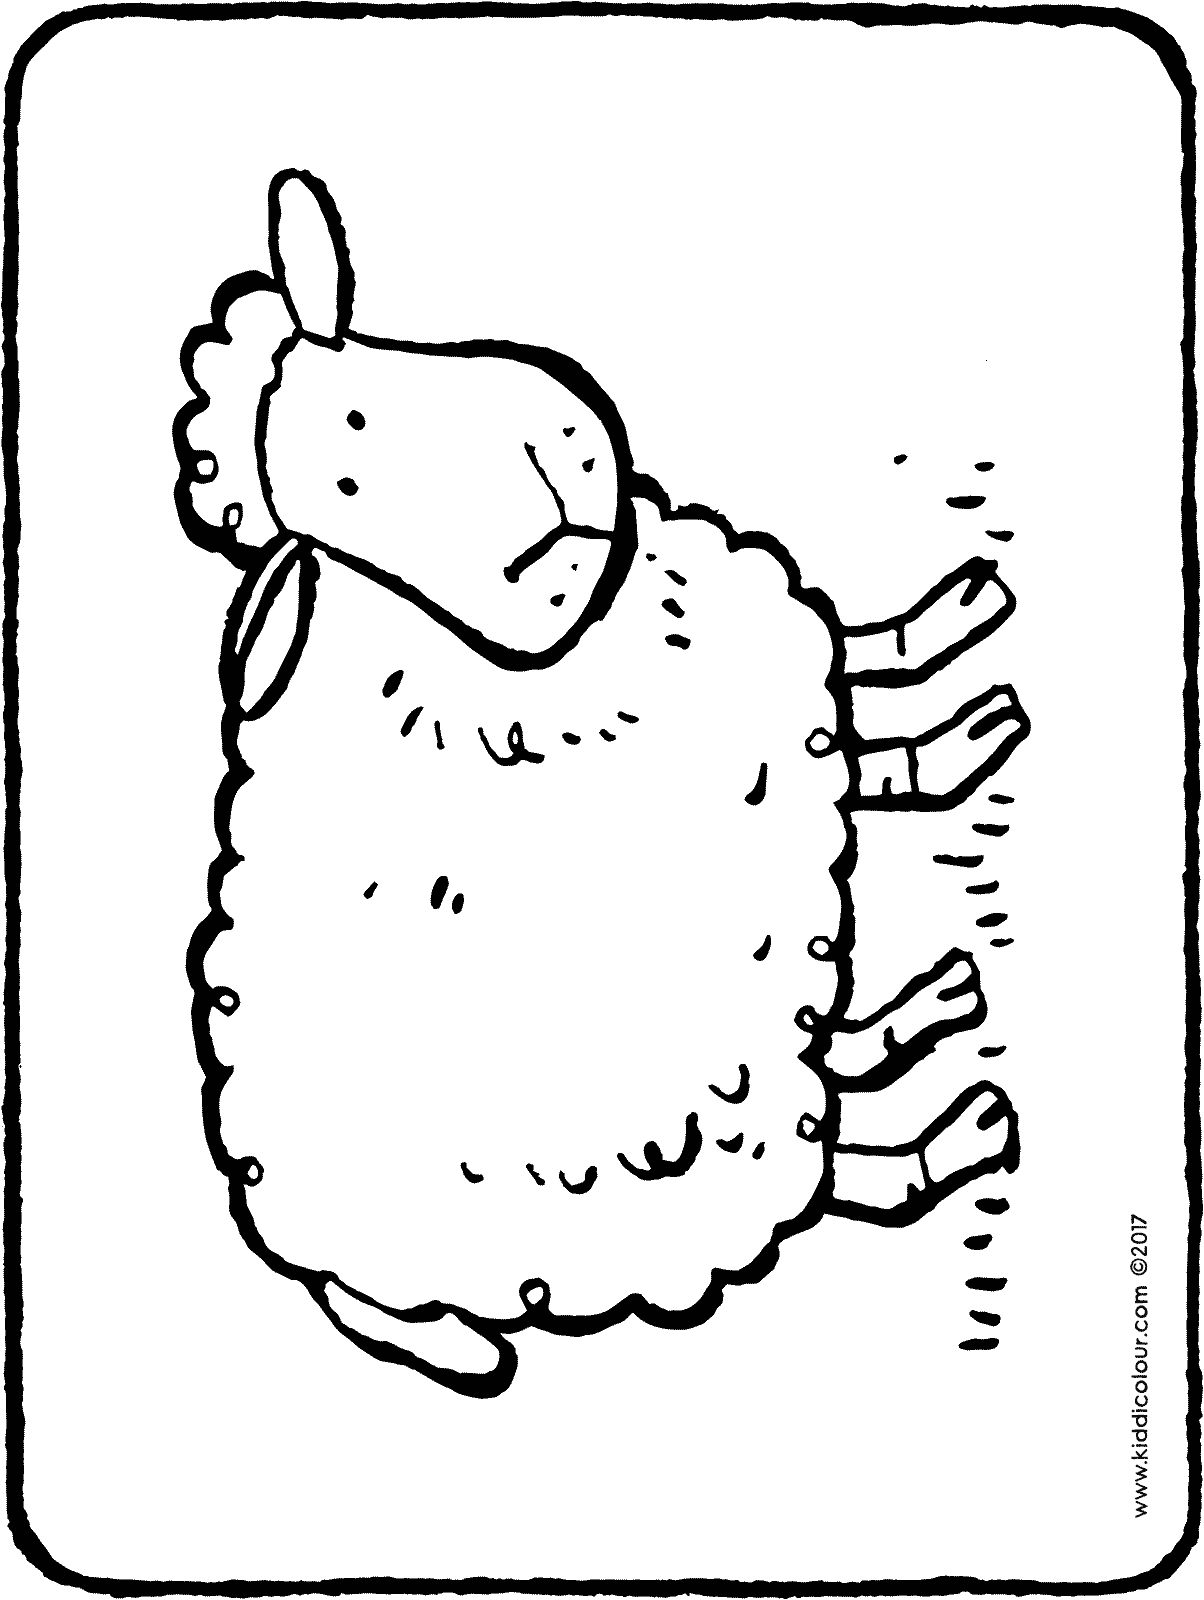 sheep colouring 10 best free printable coloring pages images on pinterest sheep colouring